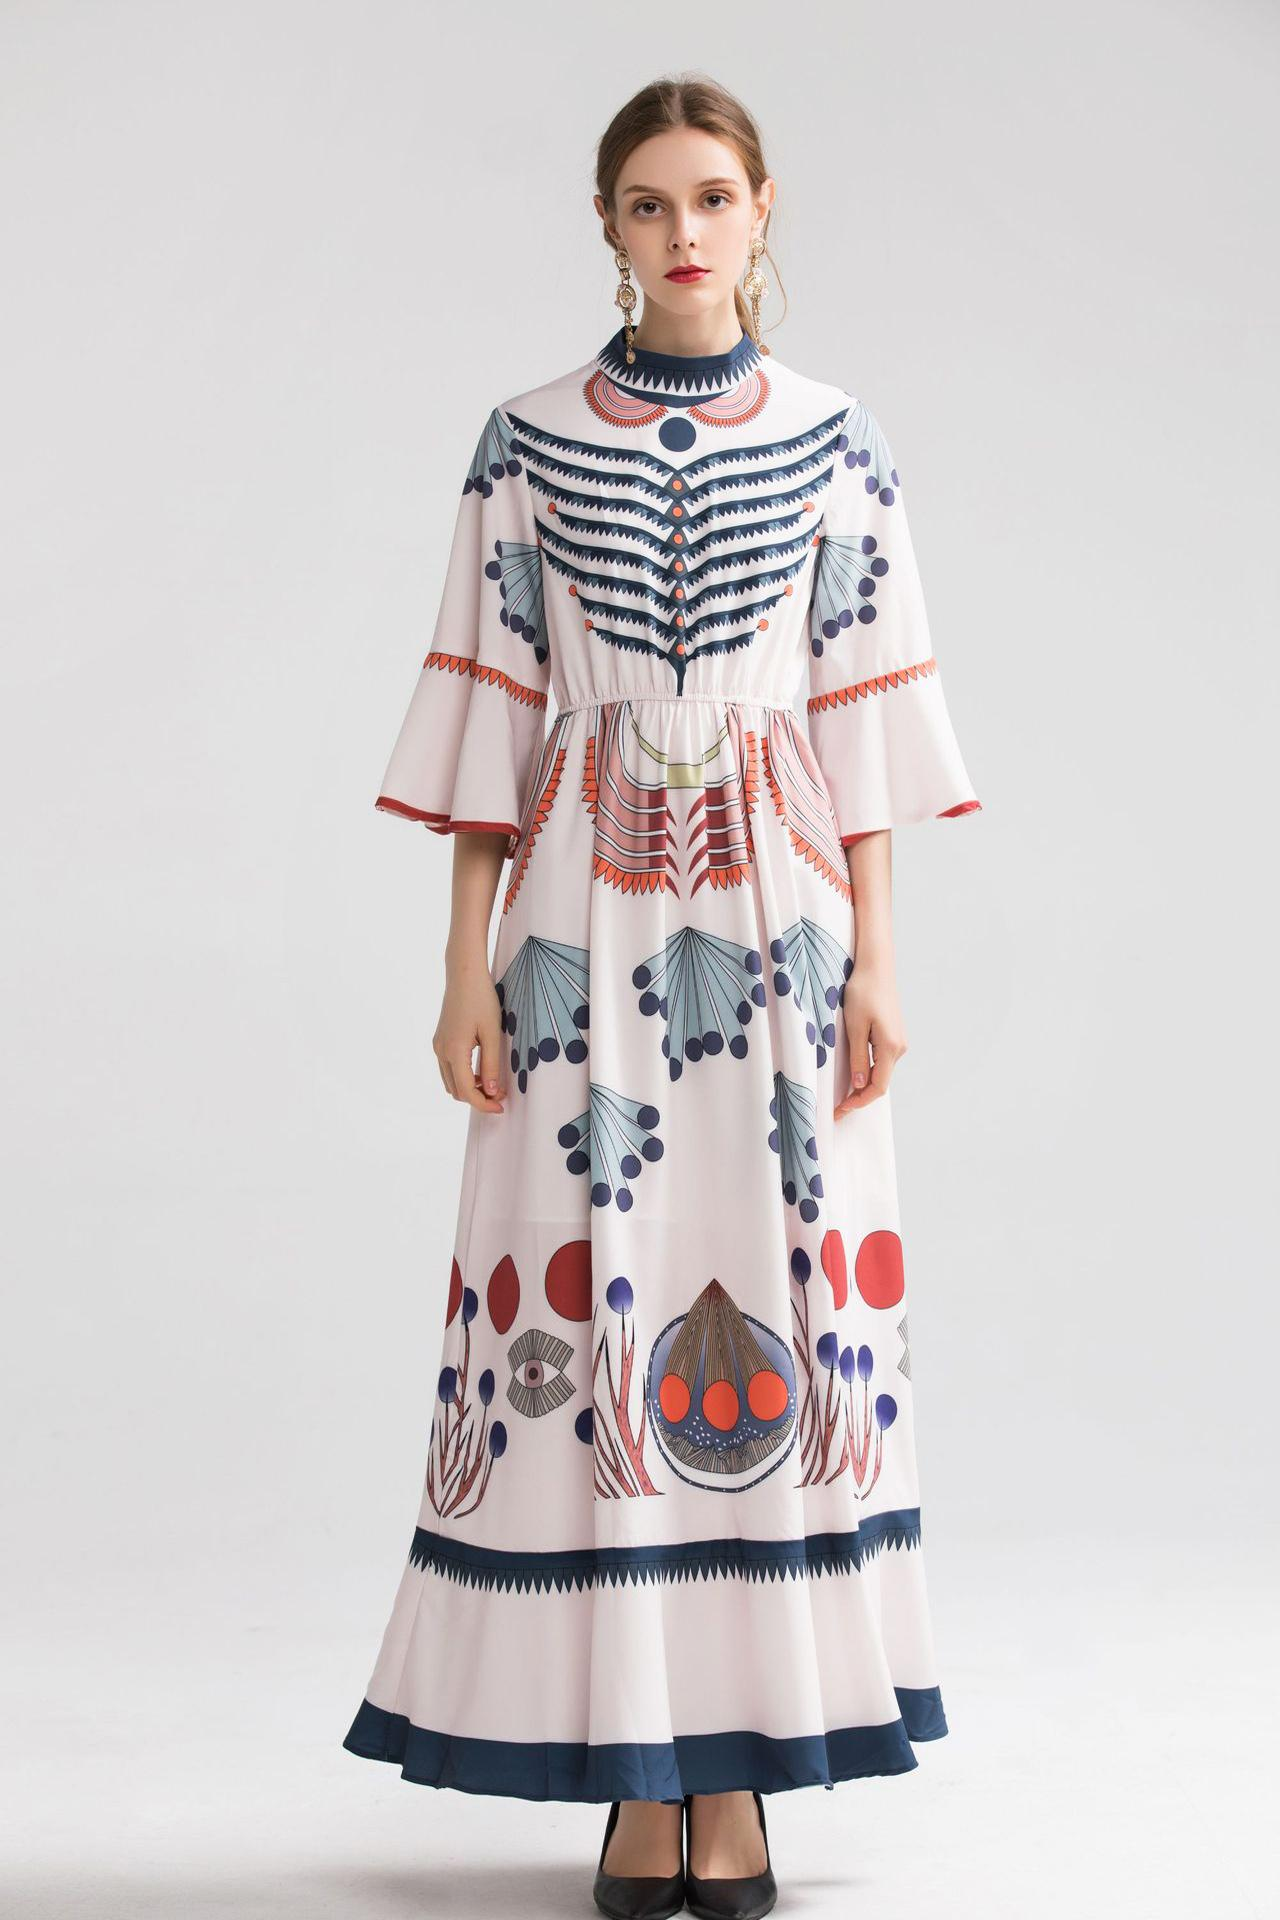 2020 Summer Desinge New Arrival 2019 Women's O Neck Flare Sleeves Printed Ruffles High Street Fashion Casual Long Dresses